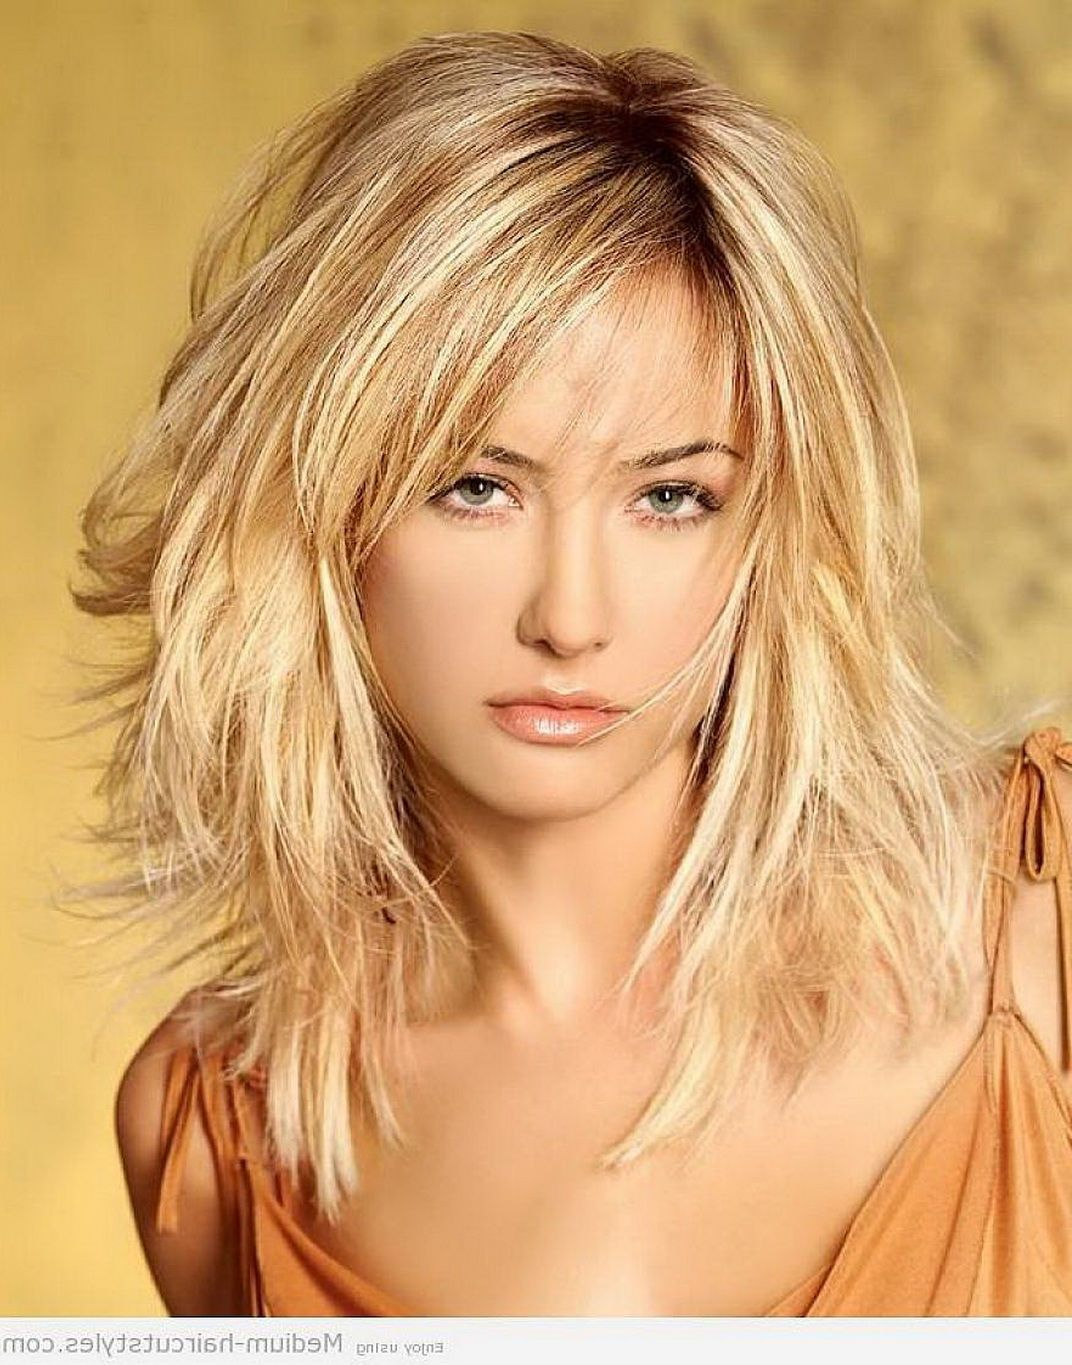 Bangs for wavy hair and oval face archives women medium haircut - Wanna Give Your Hair A New Look Medium Length Layered Hairstyles Is A Good Choice For You Here You Will Find Some Super Sexy Medium Length Layered